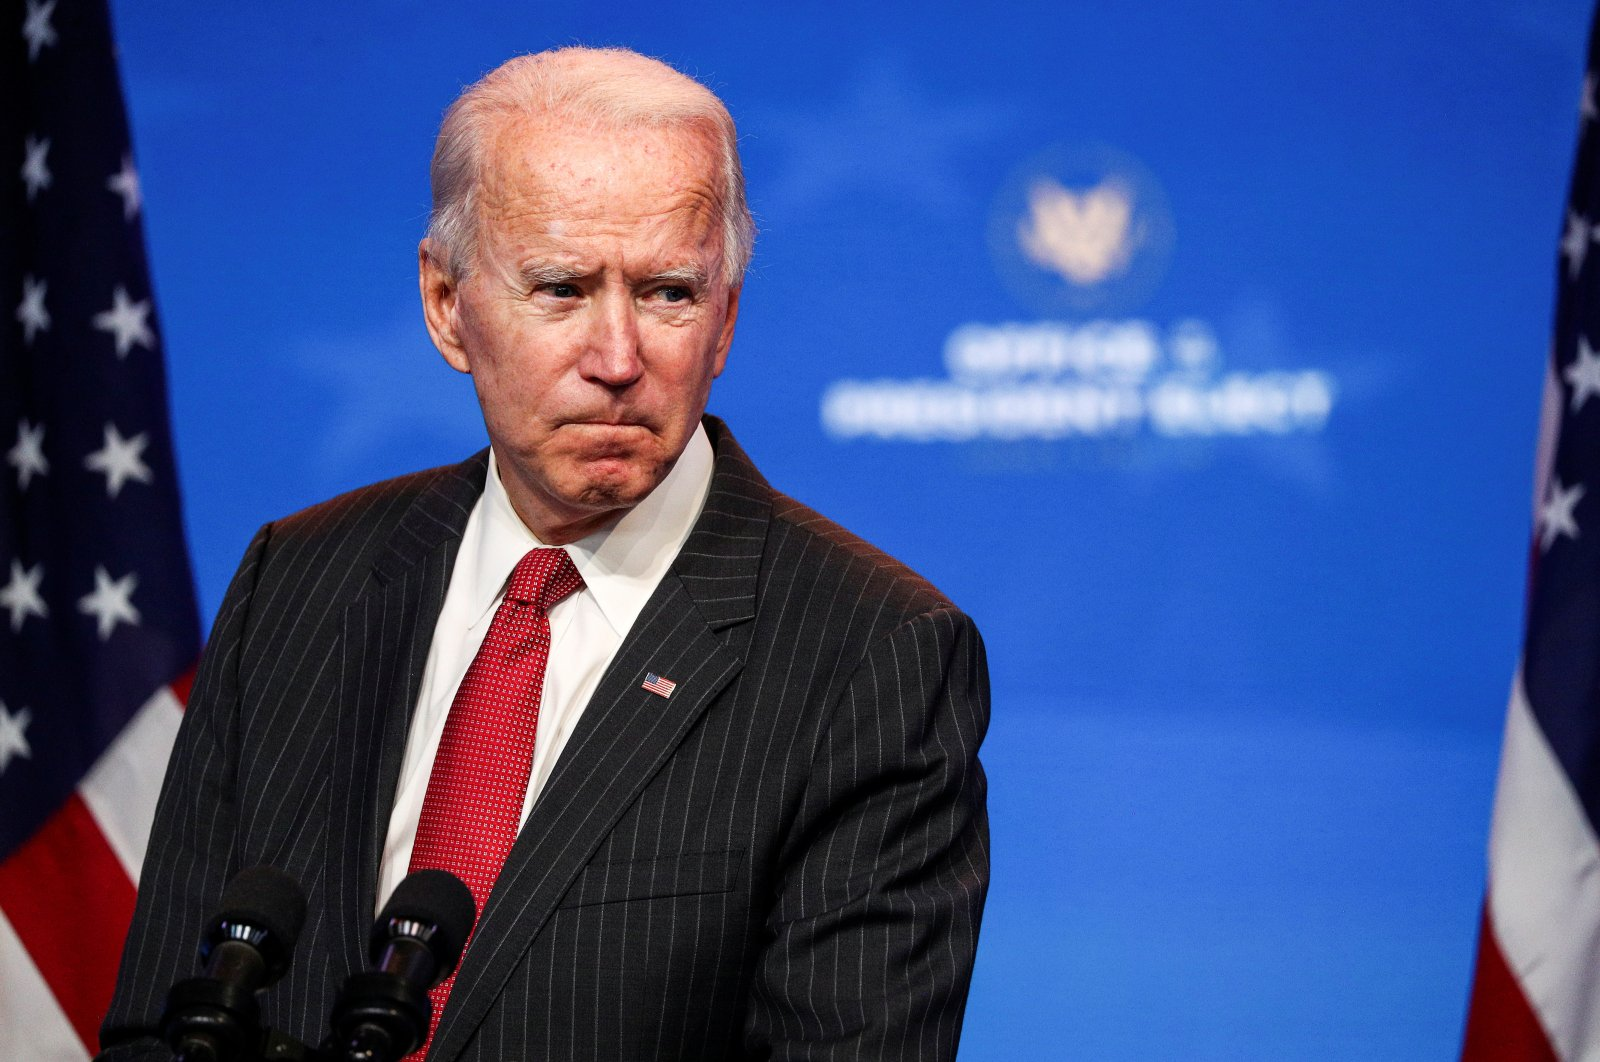 U.S. President-elect Joe Biden speaks to reporters following an online meeting with members of the National Governors Association (NGA) executive committee, Wilmington, Delaware, U.S., Nov. 19, 2020. (REUTERS Photo)